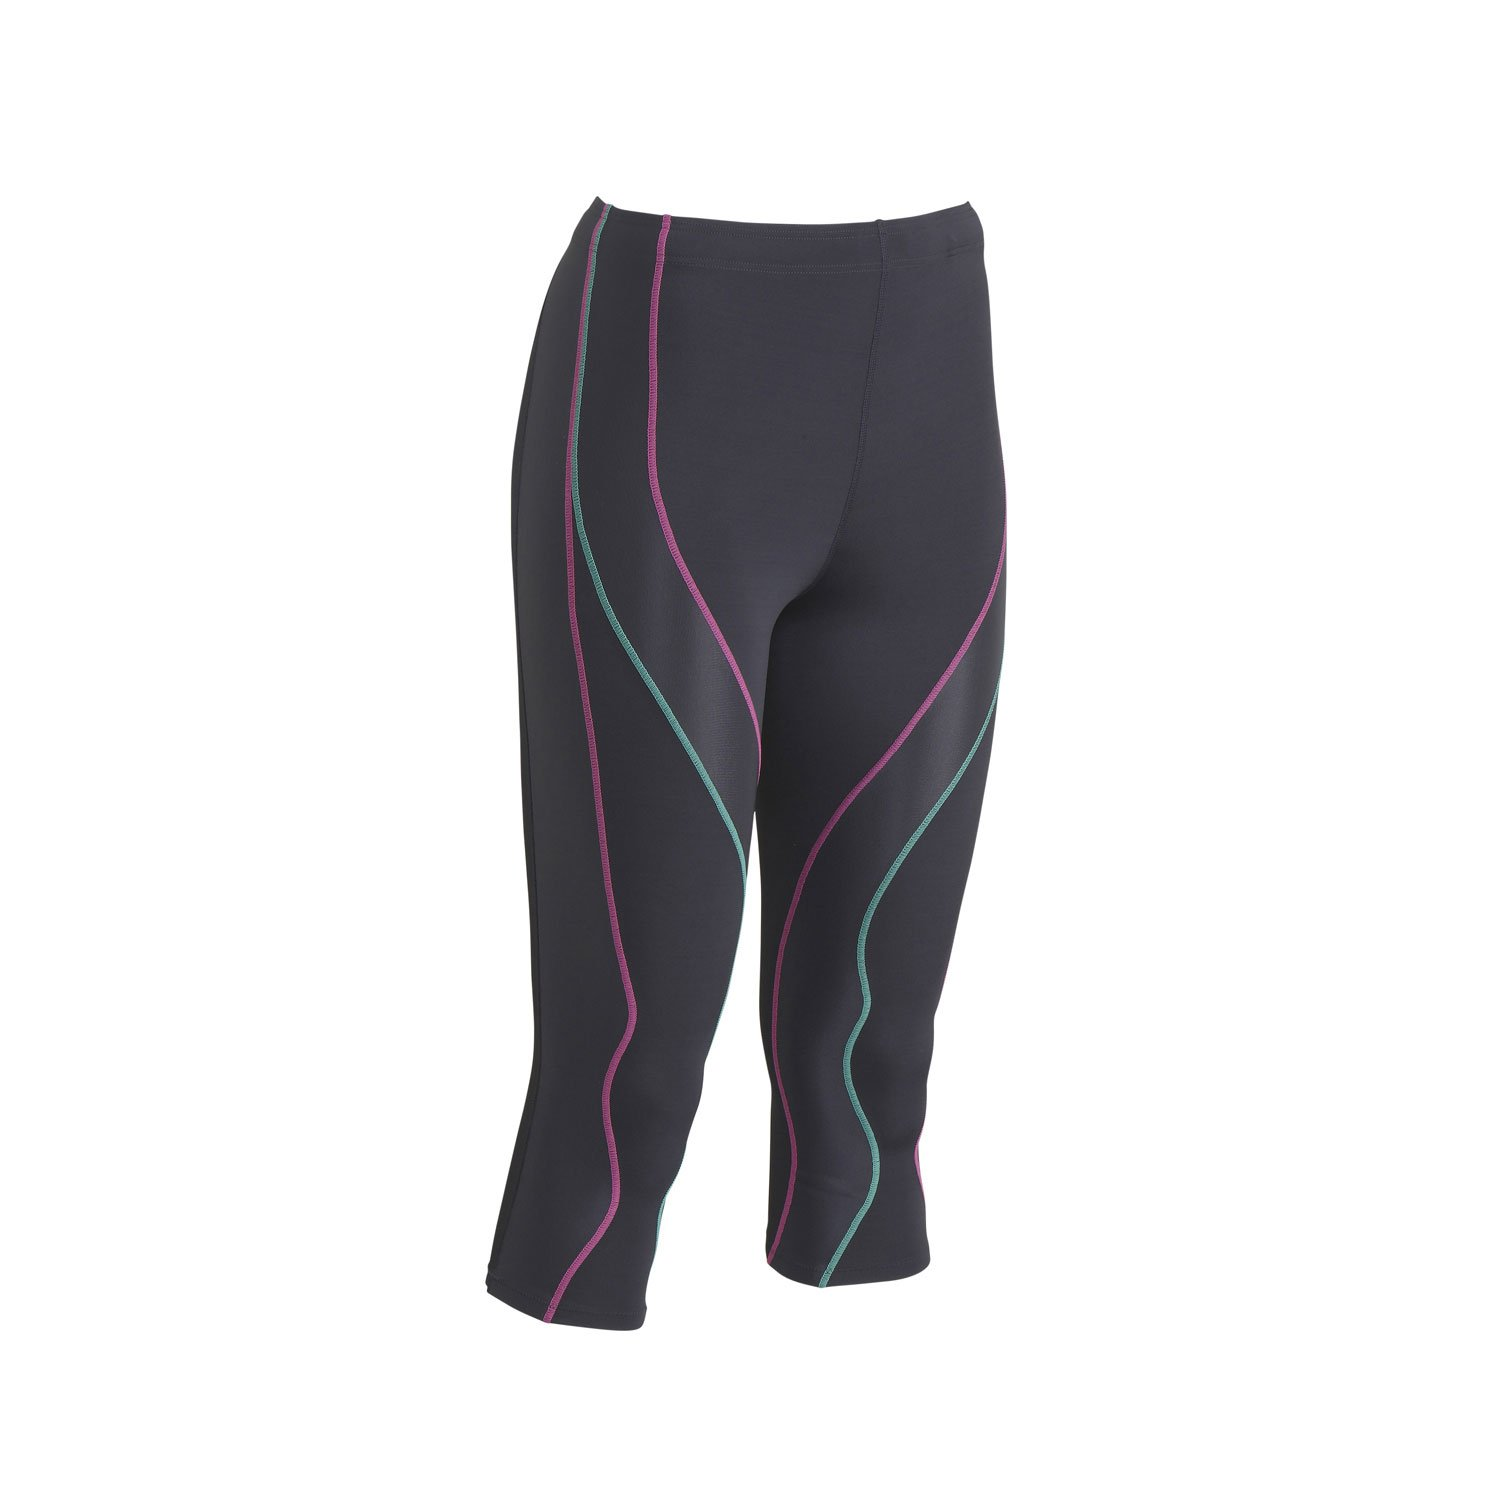 CW-X Women's 3/4 Performx Tights, Grey/Pink/Turquoise, X-Small